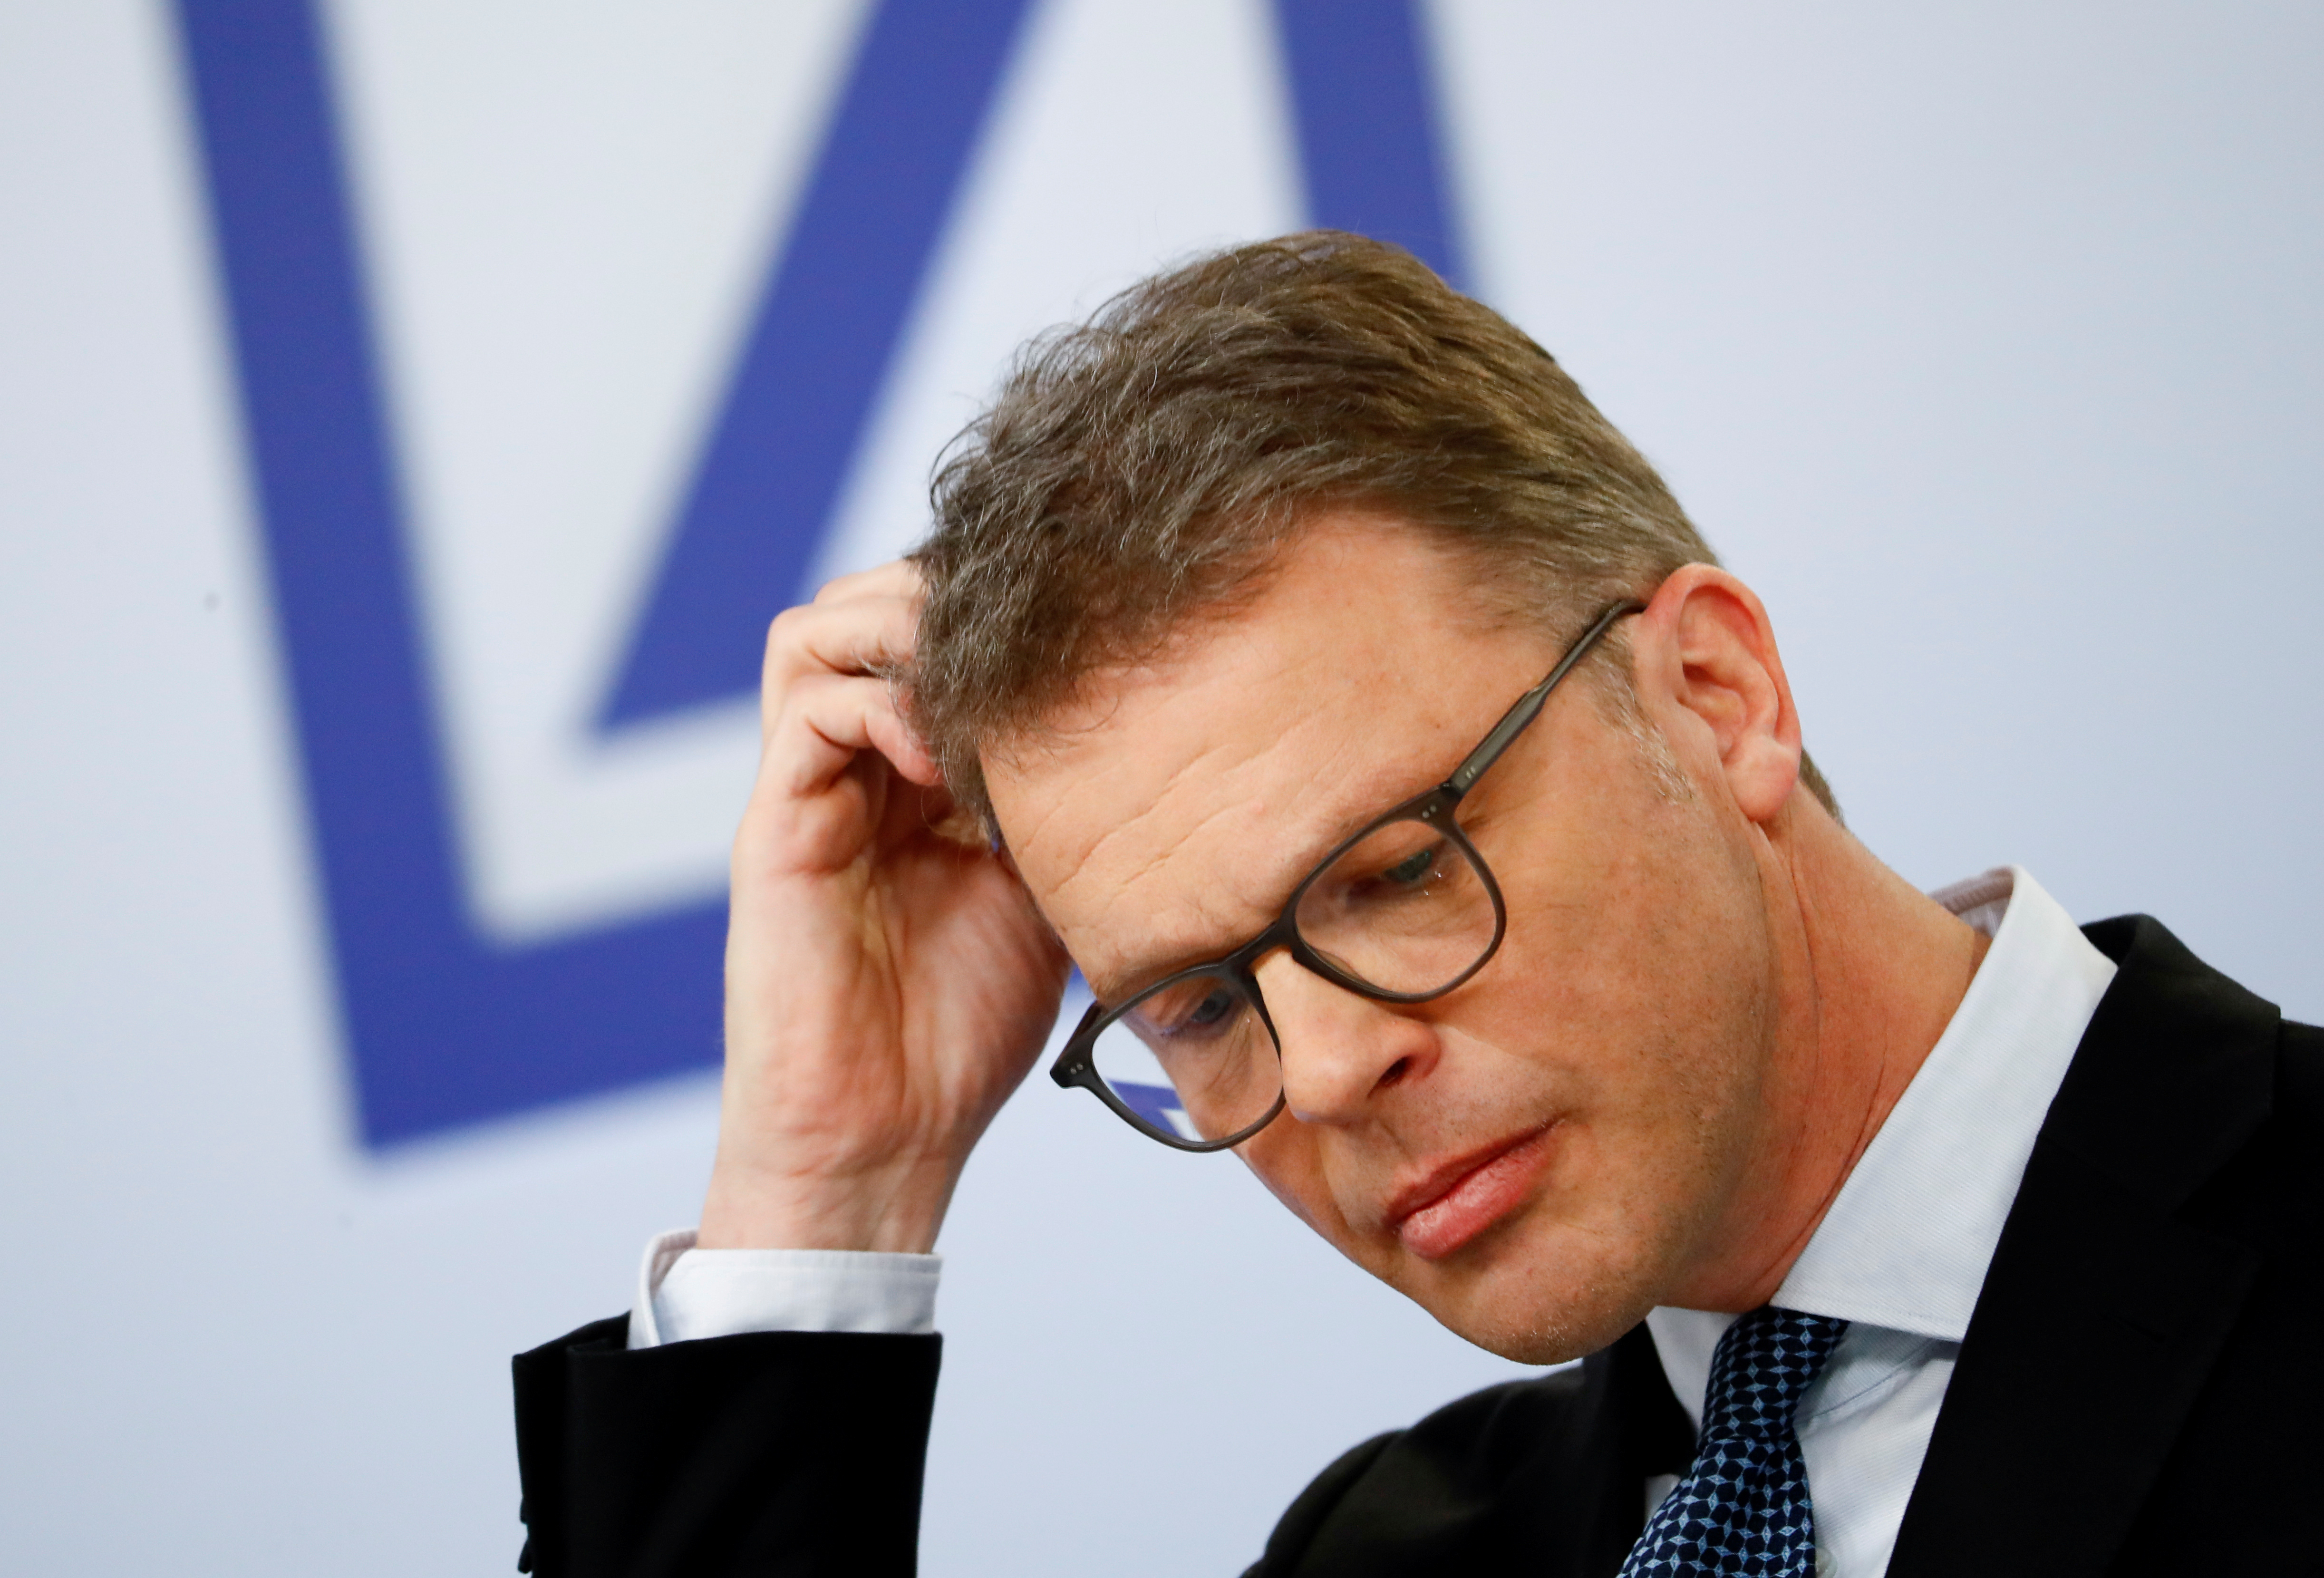 Christian Sewing, CEO of Deutsche Bank AG, gestures during the bank's annual news conference in Frankfurt, Germany January 30, 2020. REUTERS/Ralph Orlowski/File Photo